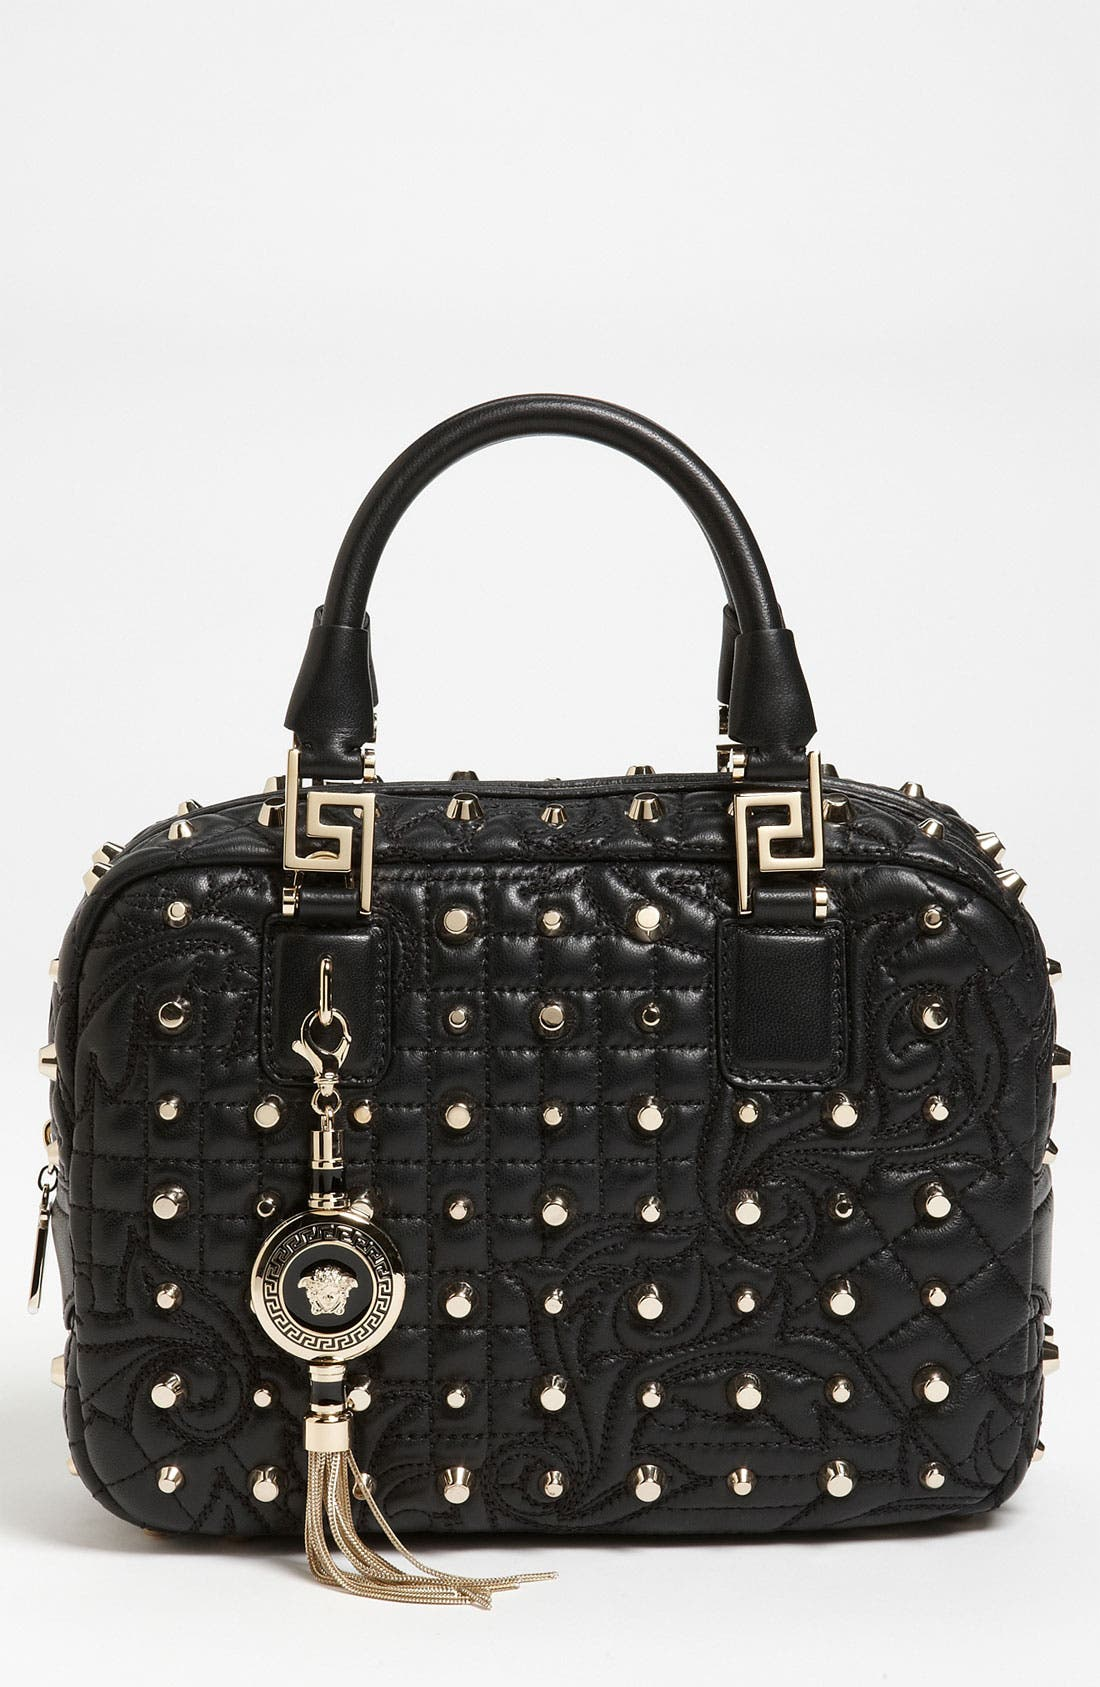 Alternate Image 1 Selected - Versace 'Vanitas - Small' Leather Satchel